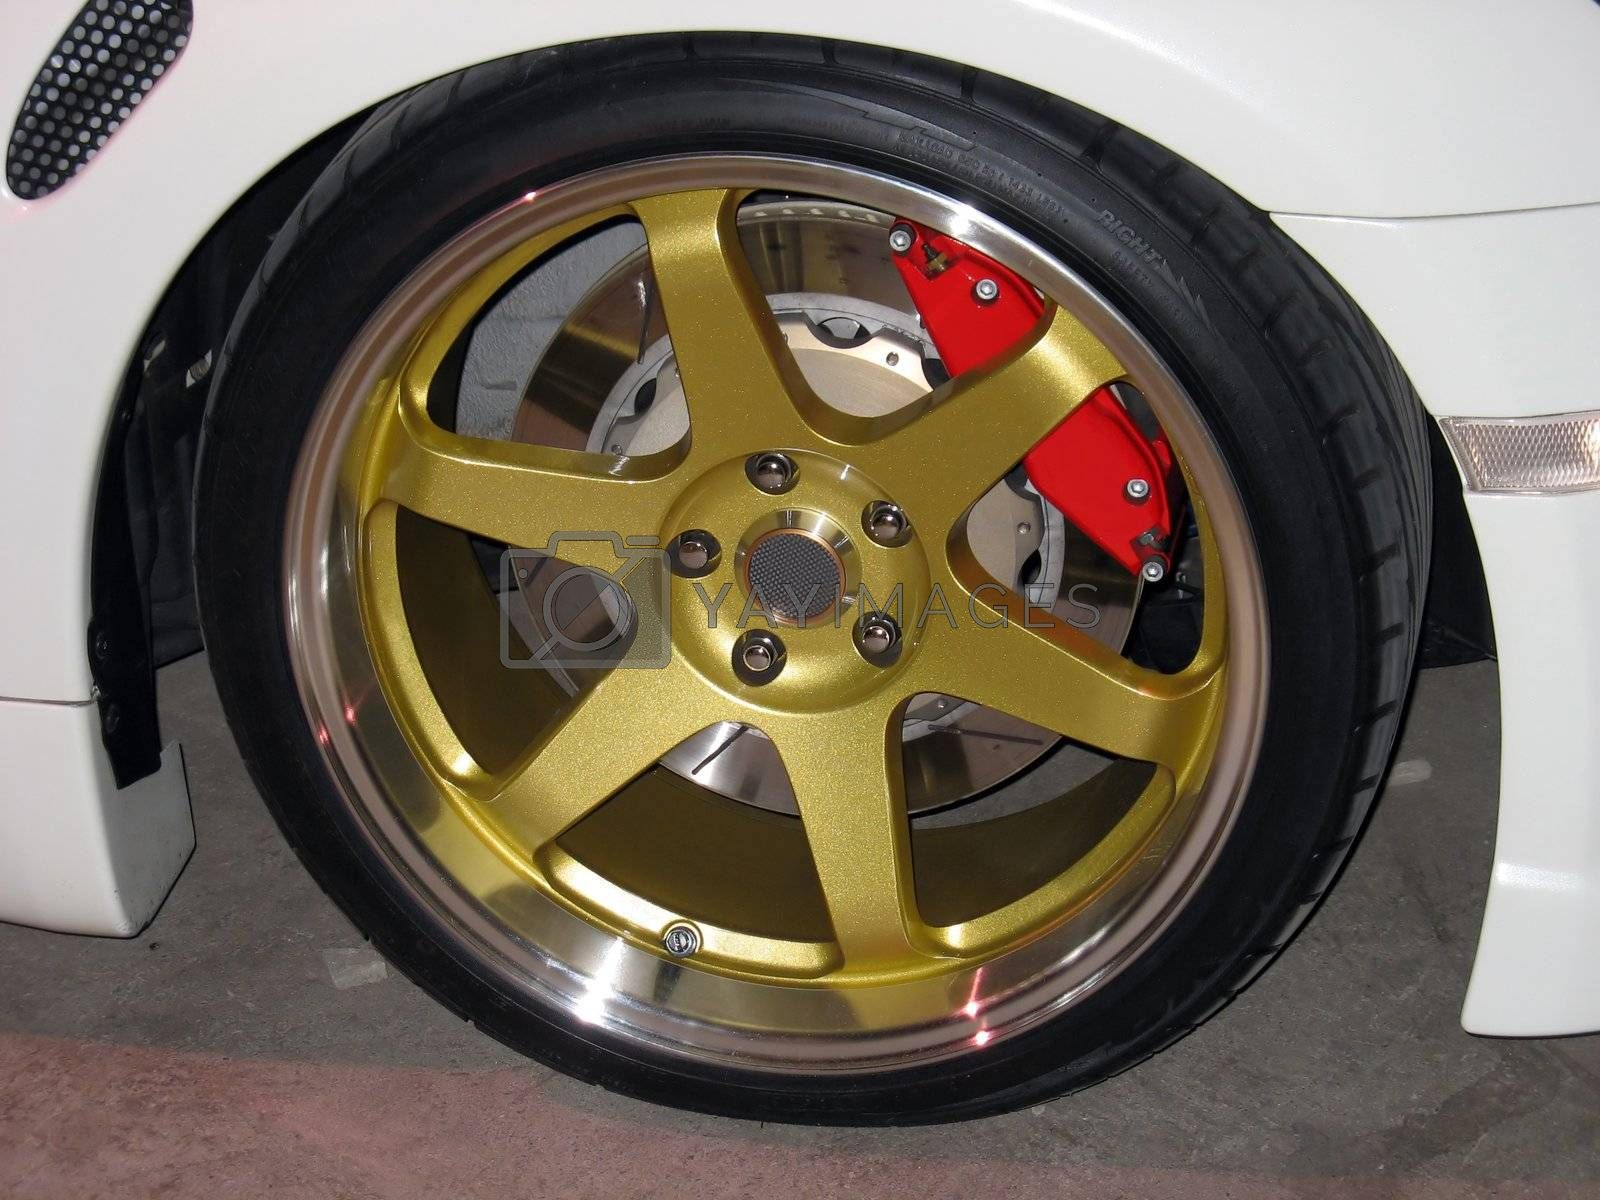 custom gold rims on a white sportscar complete with performance brakes